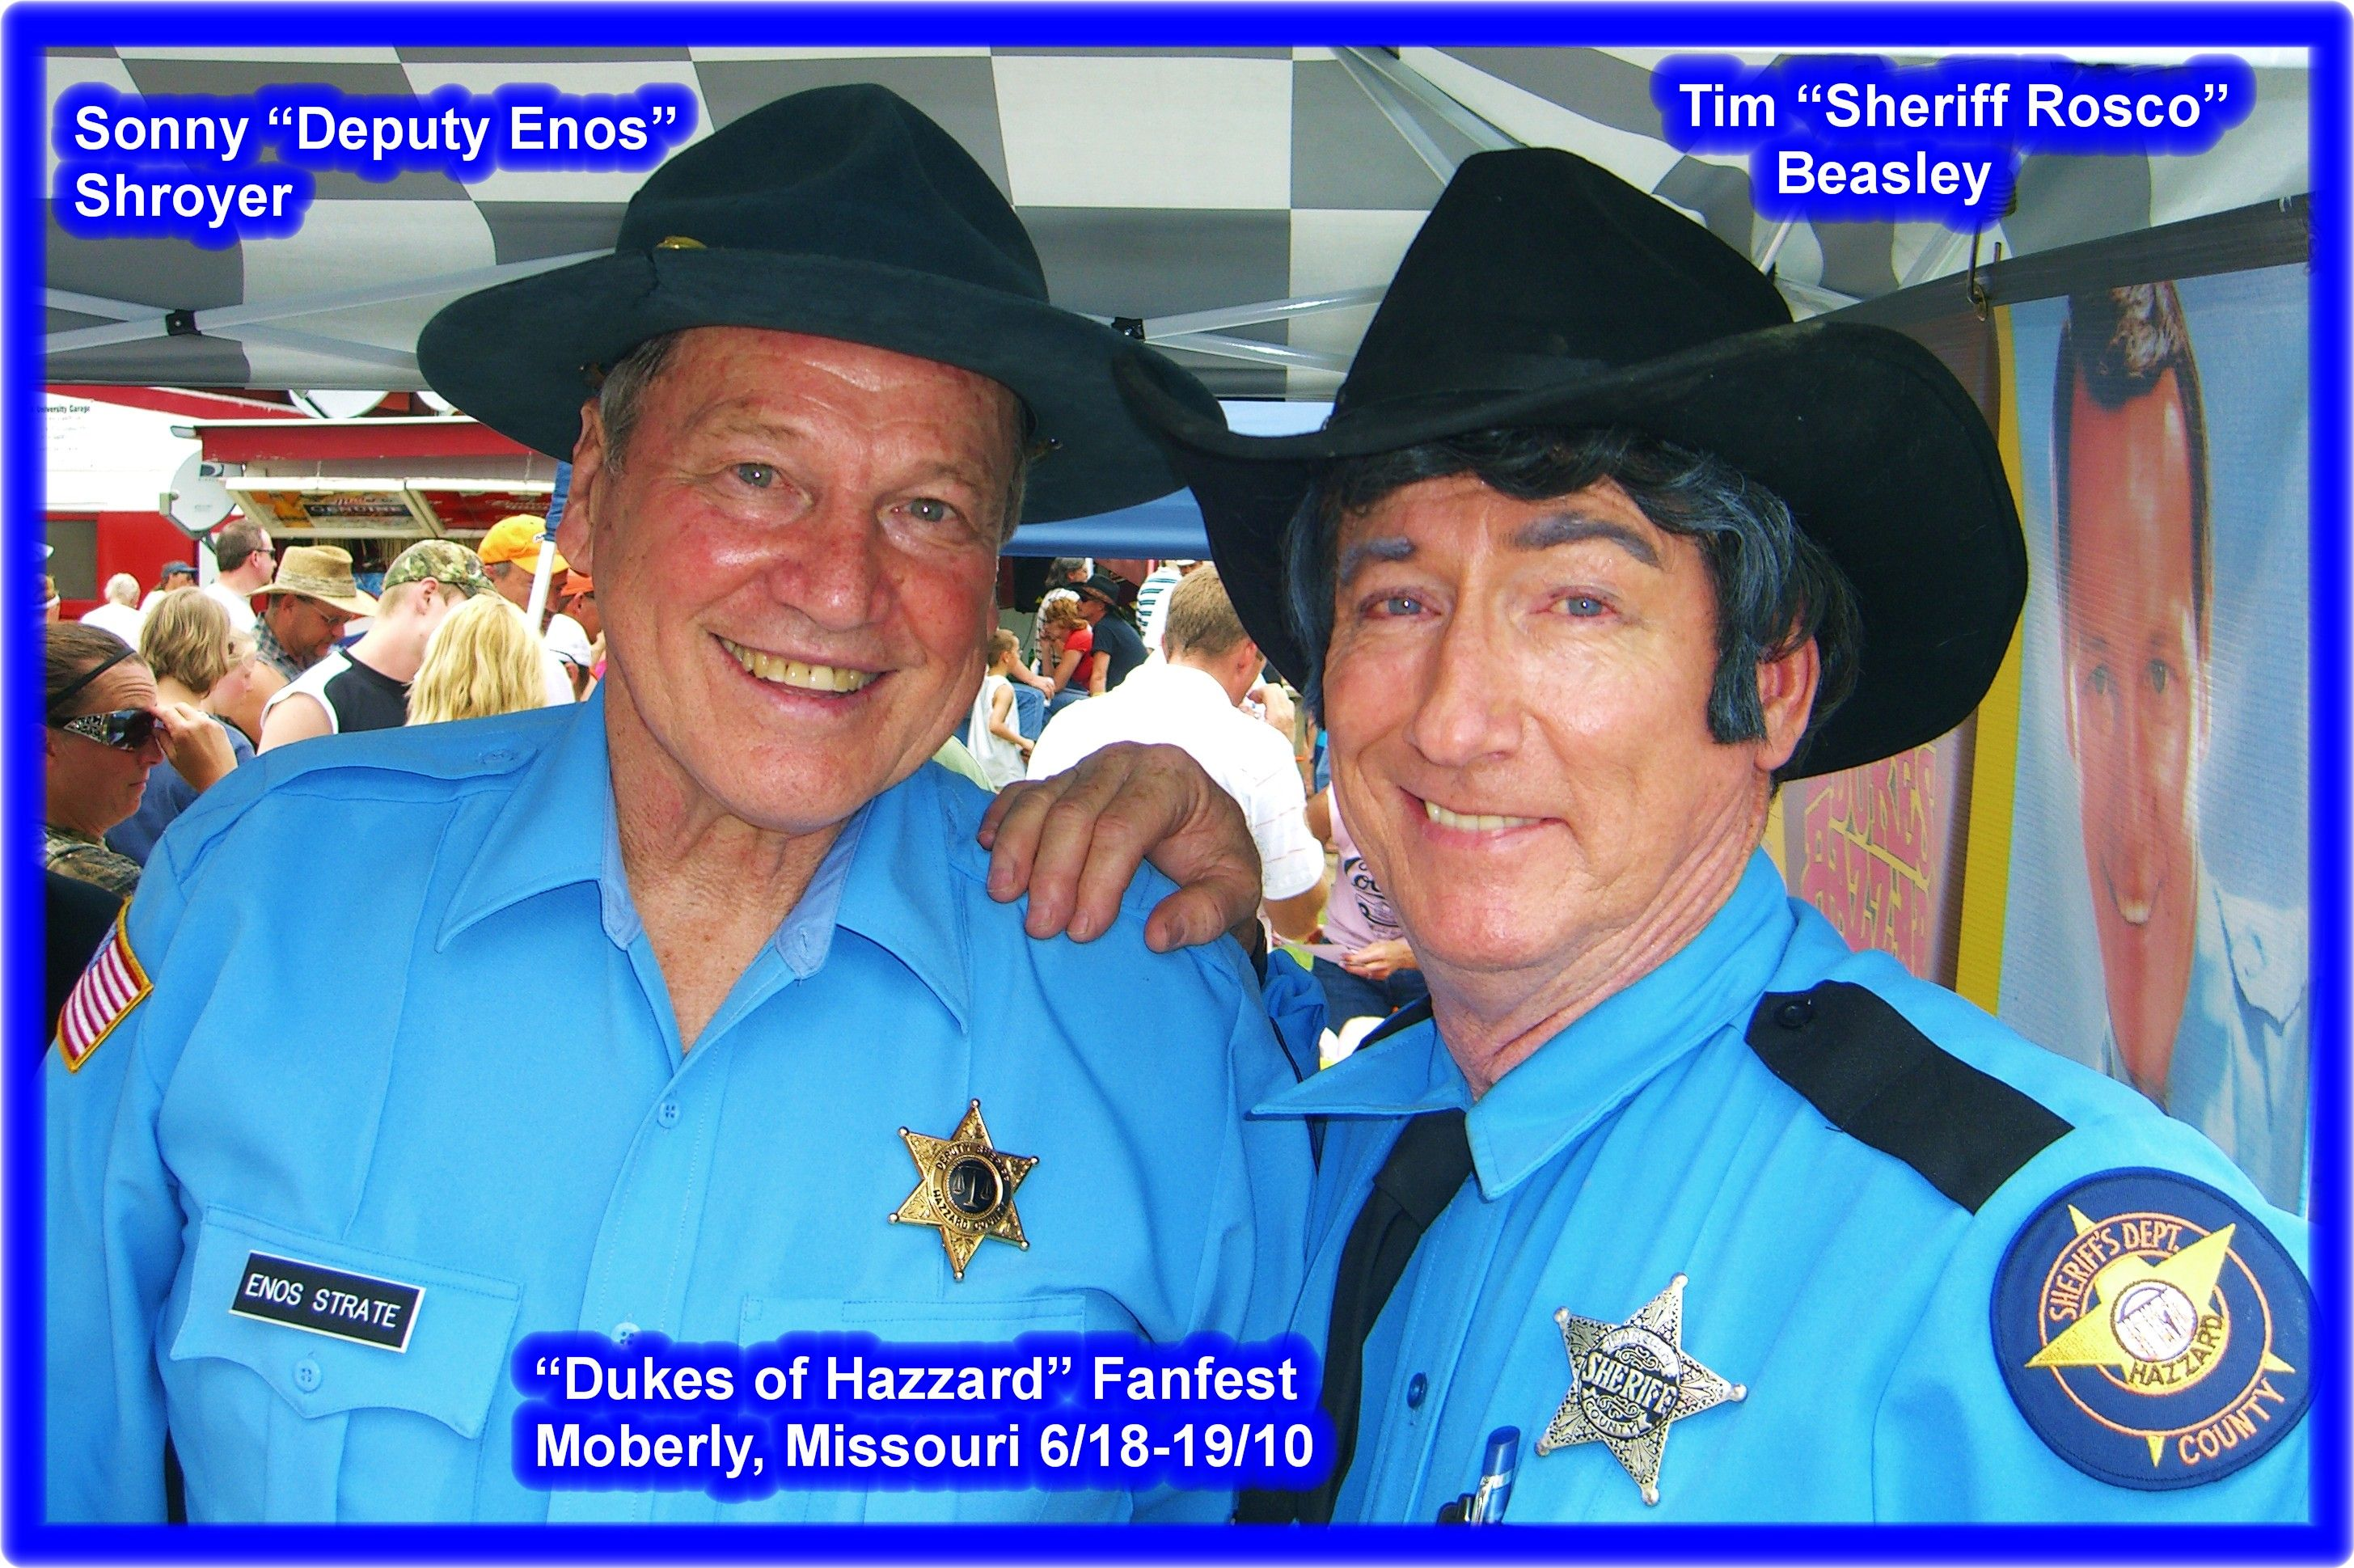 Deputy Enos Sonny Shroyer And Sheriff Rosco Having A Laugh At The Autographs Area With Deputy Cletus Rick Hu Sheriff Have A Laugh The Dukes Of Hazzard Enos was played by sonny shroyer. sonny shroyer and sheriff rosco